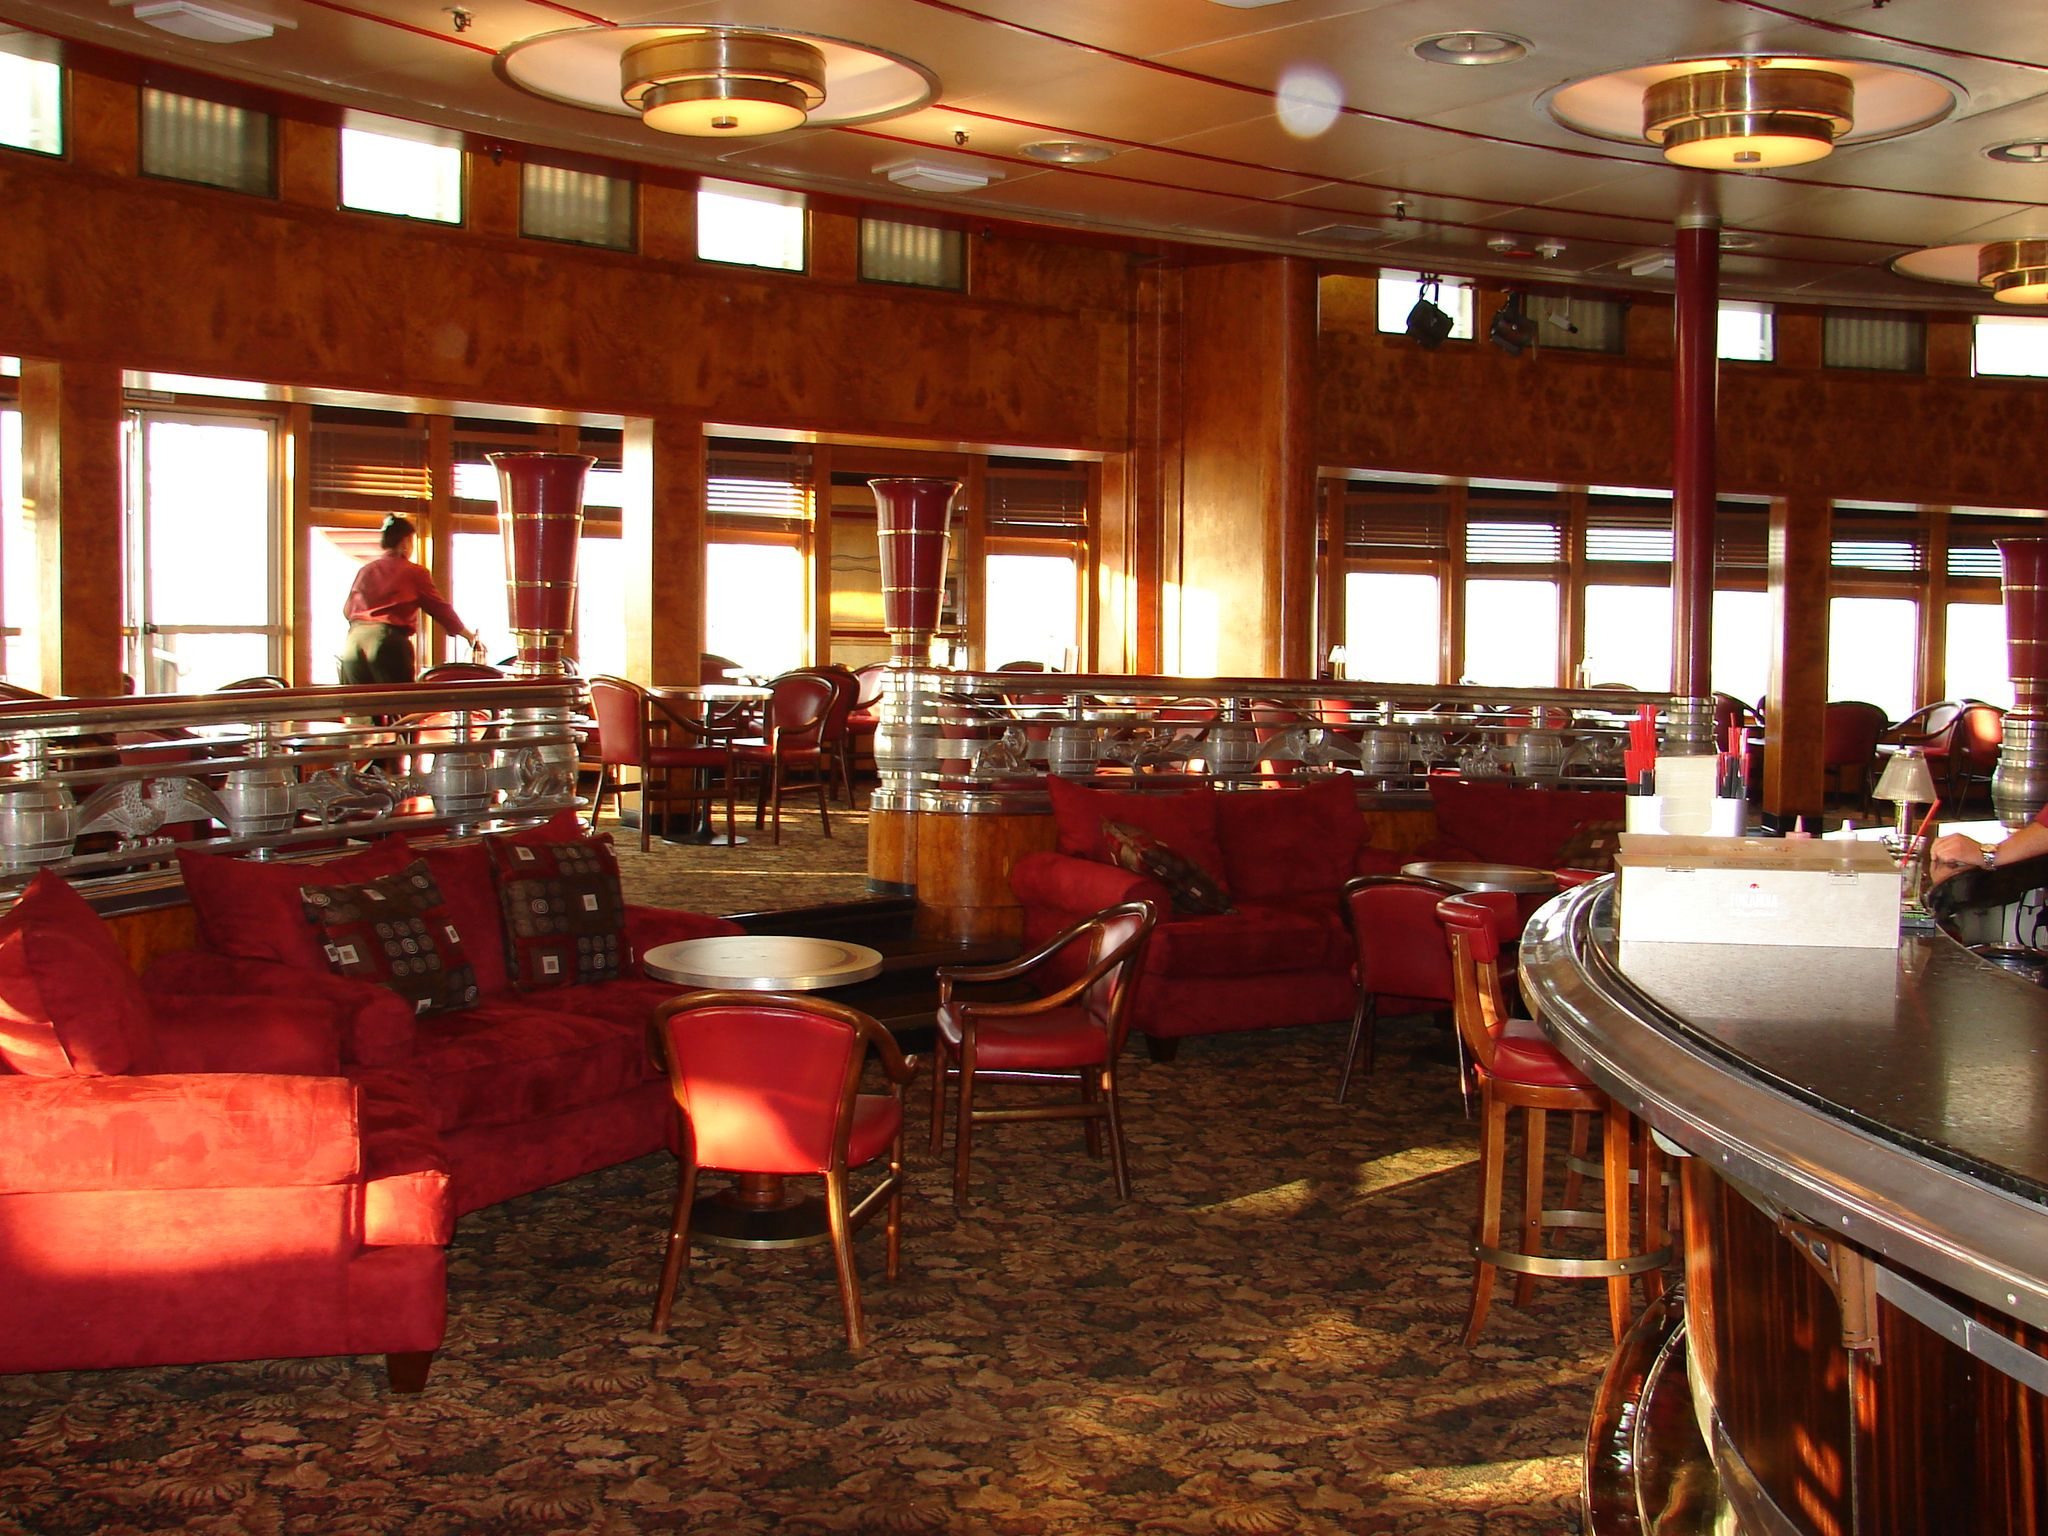 Queen Mary Historic Ocean Liner In Long Beach, Ca. Observation lounge/bar at the front of the ship below the bridge area.